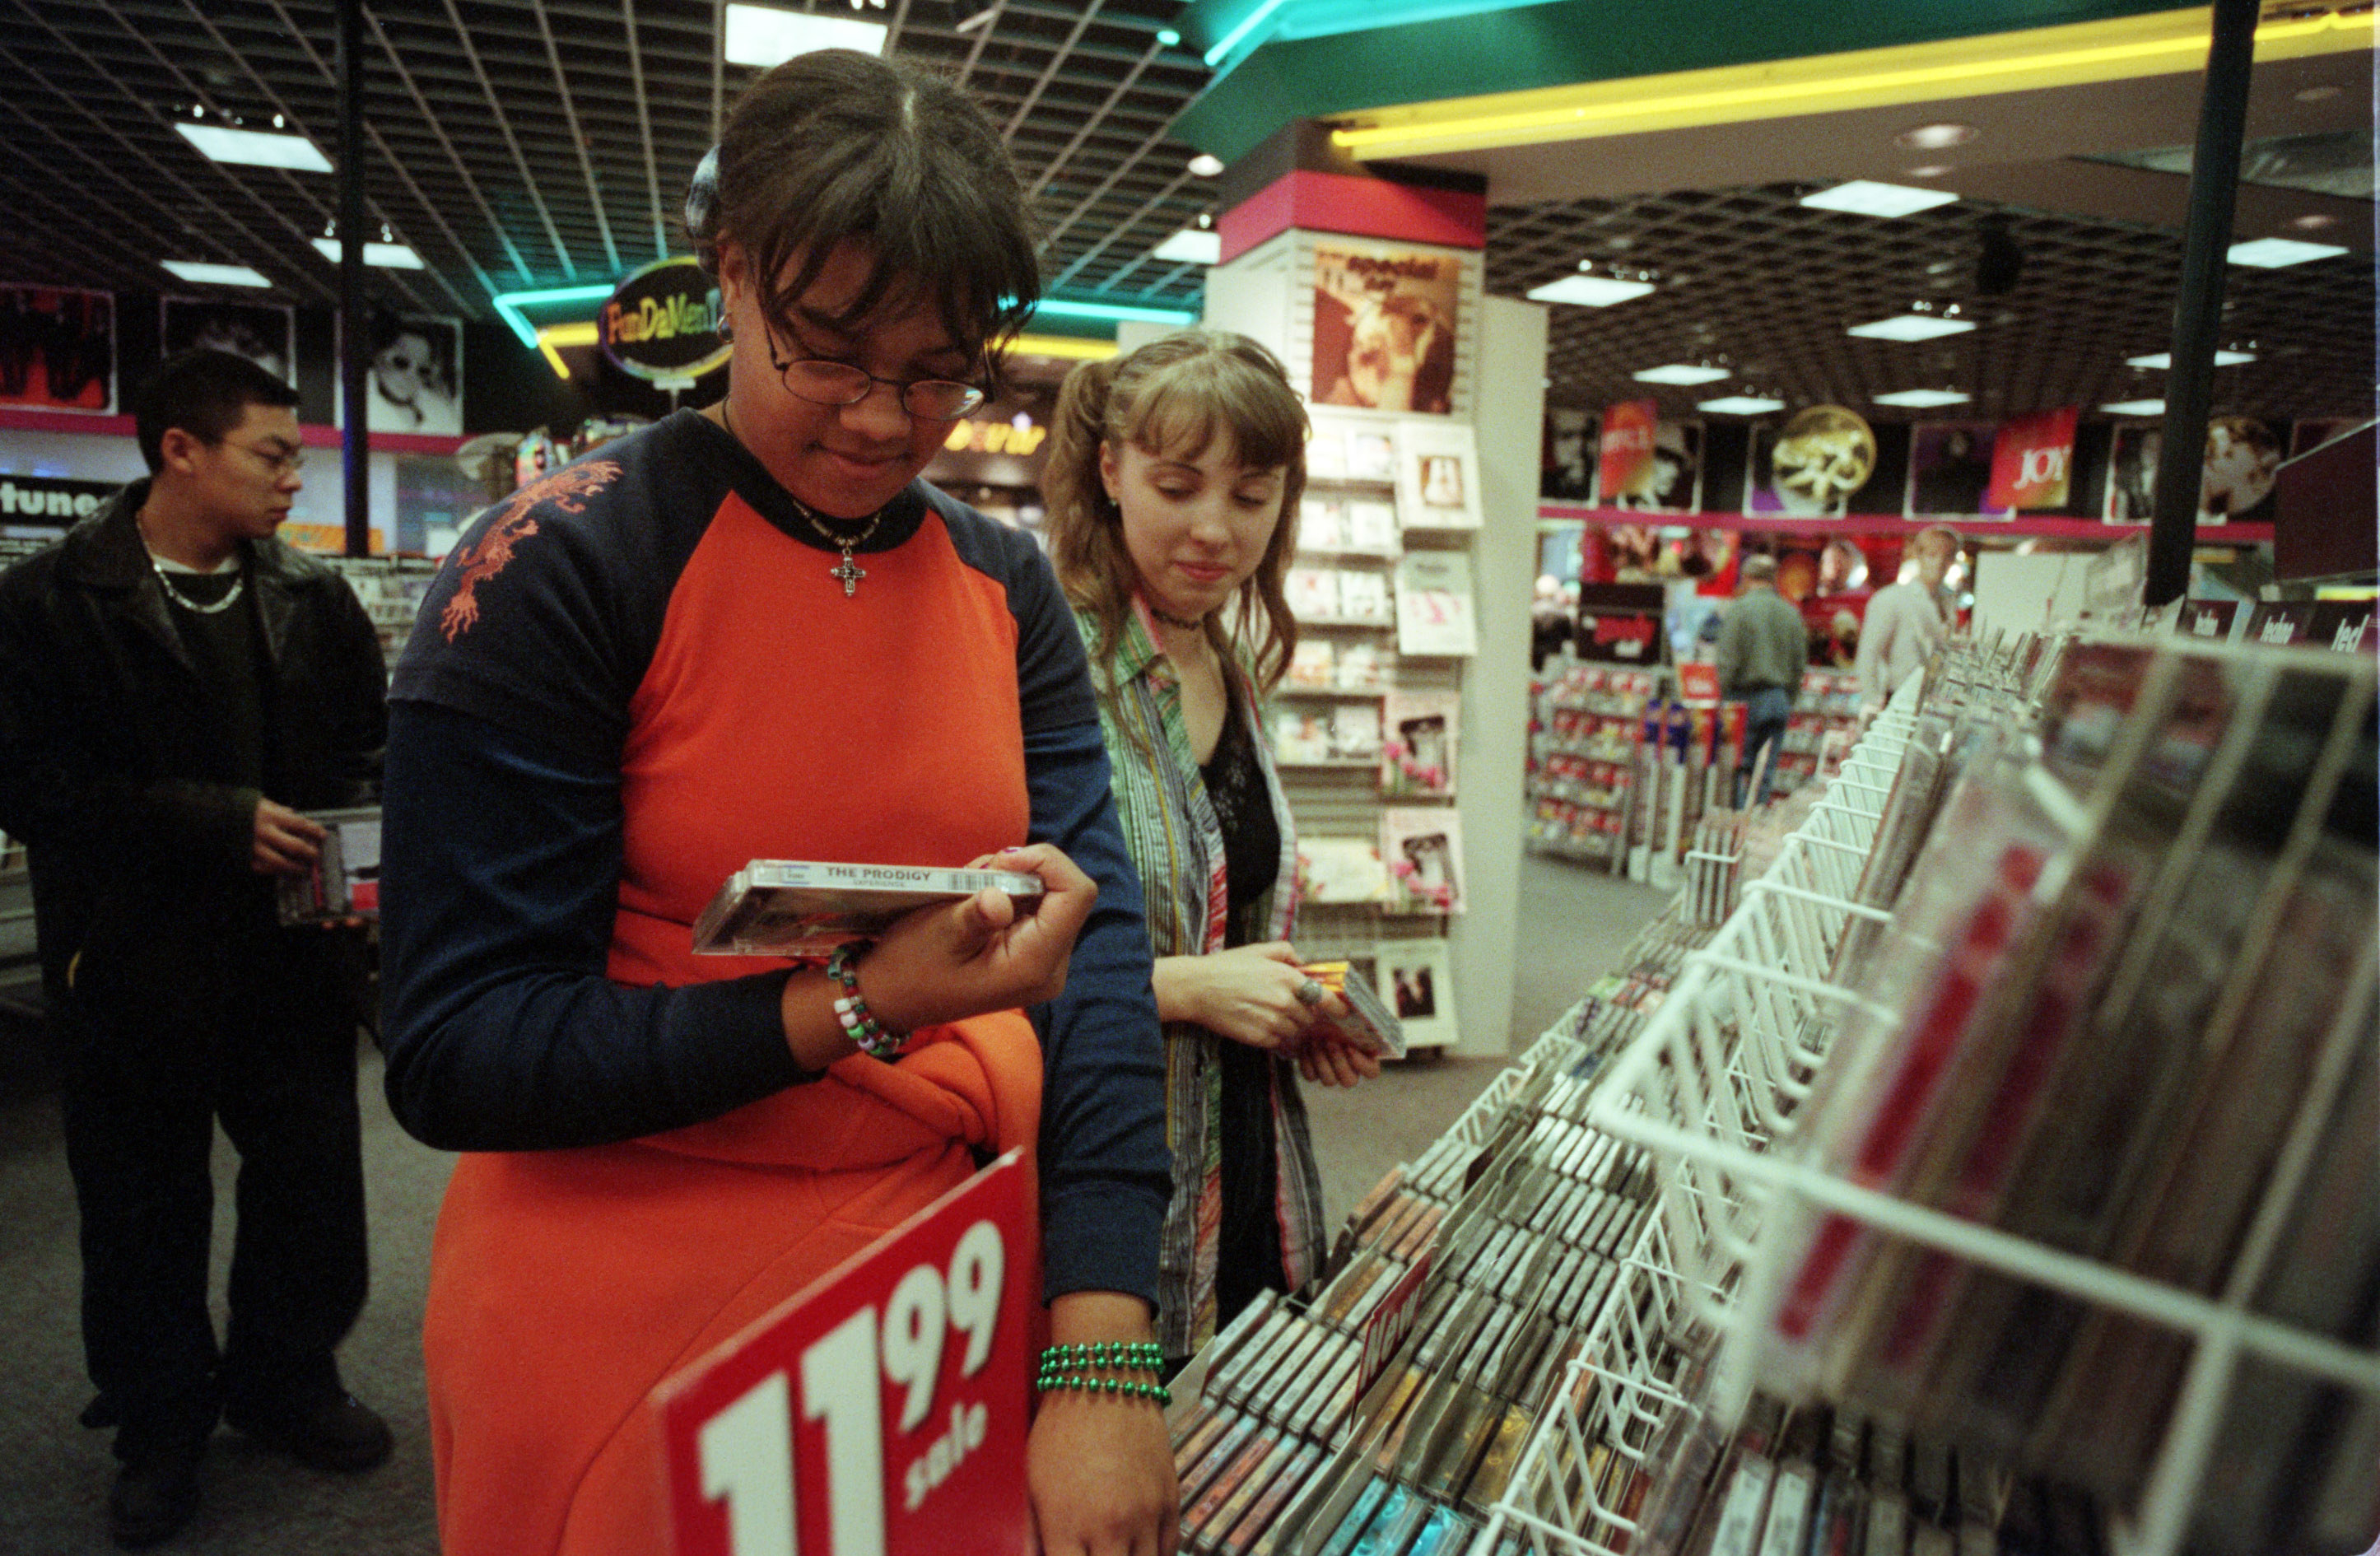 Photo of two kids looking at a CD in a Sam Goody's